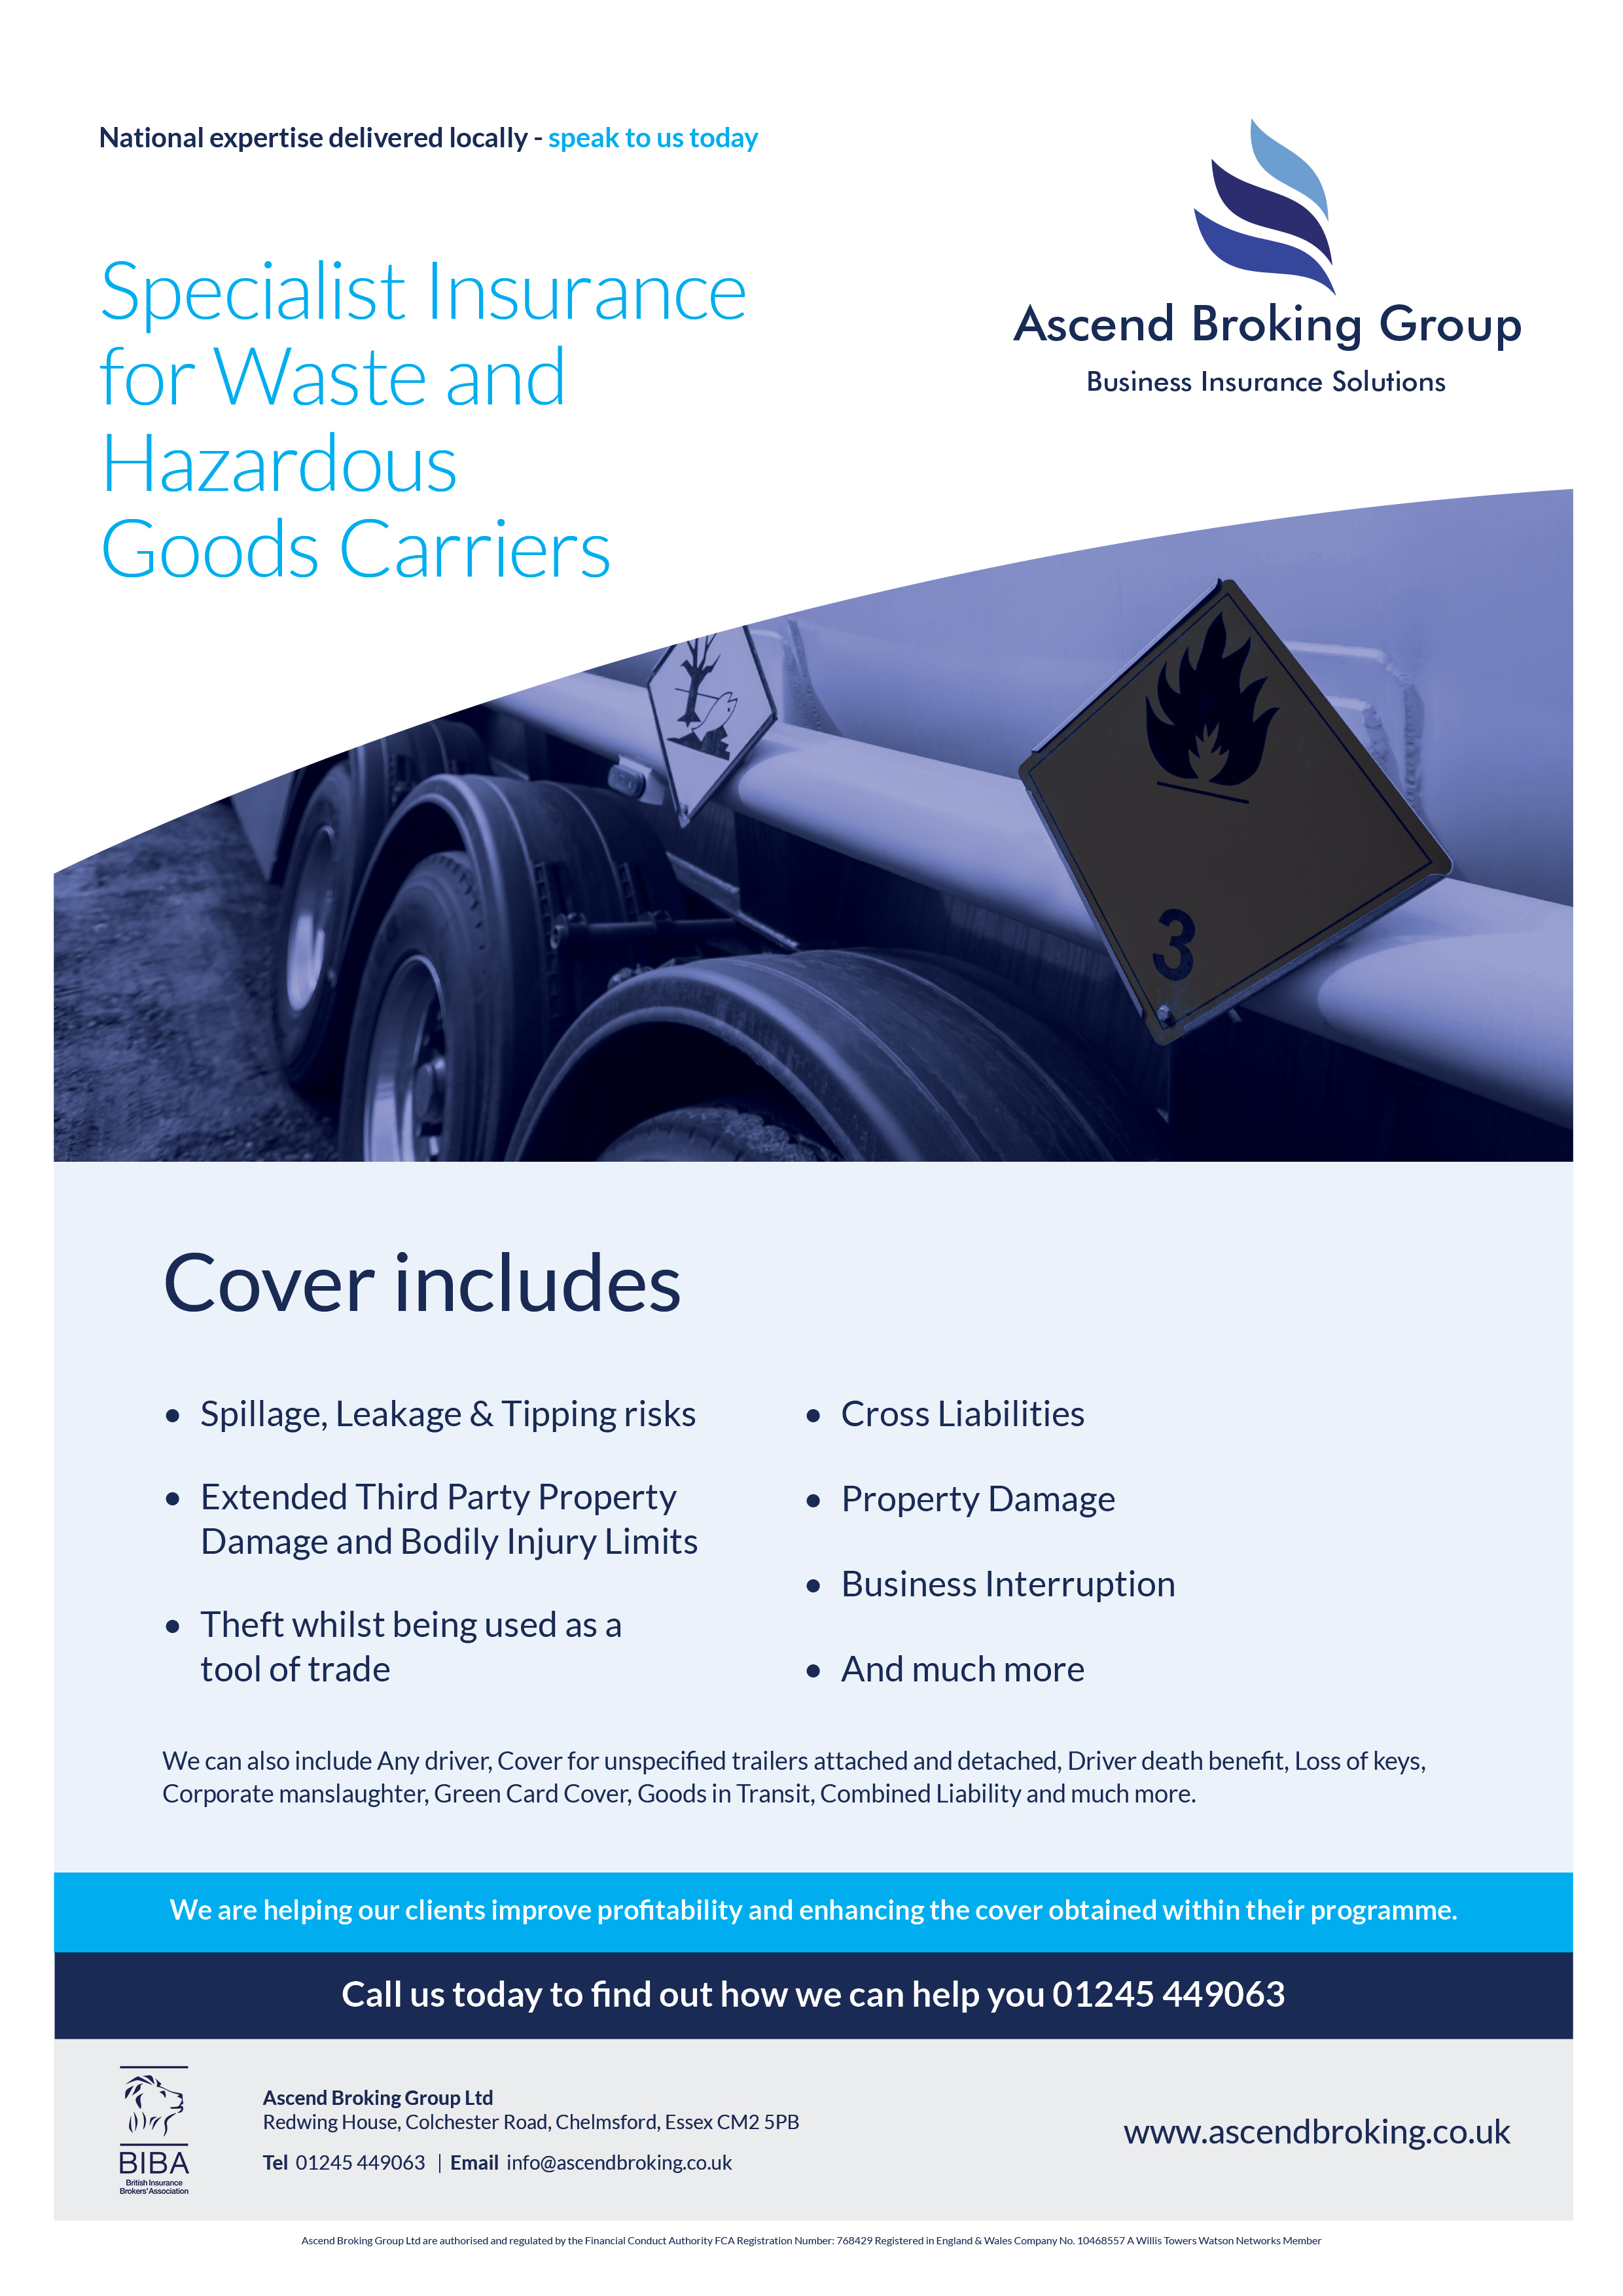 Specialist Insurance for Waste and Hazardous Goods Carriers